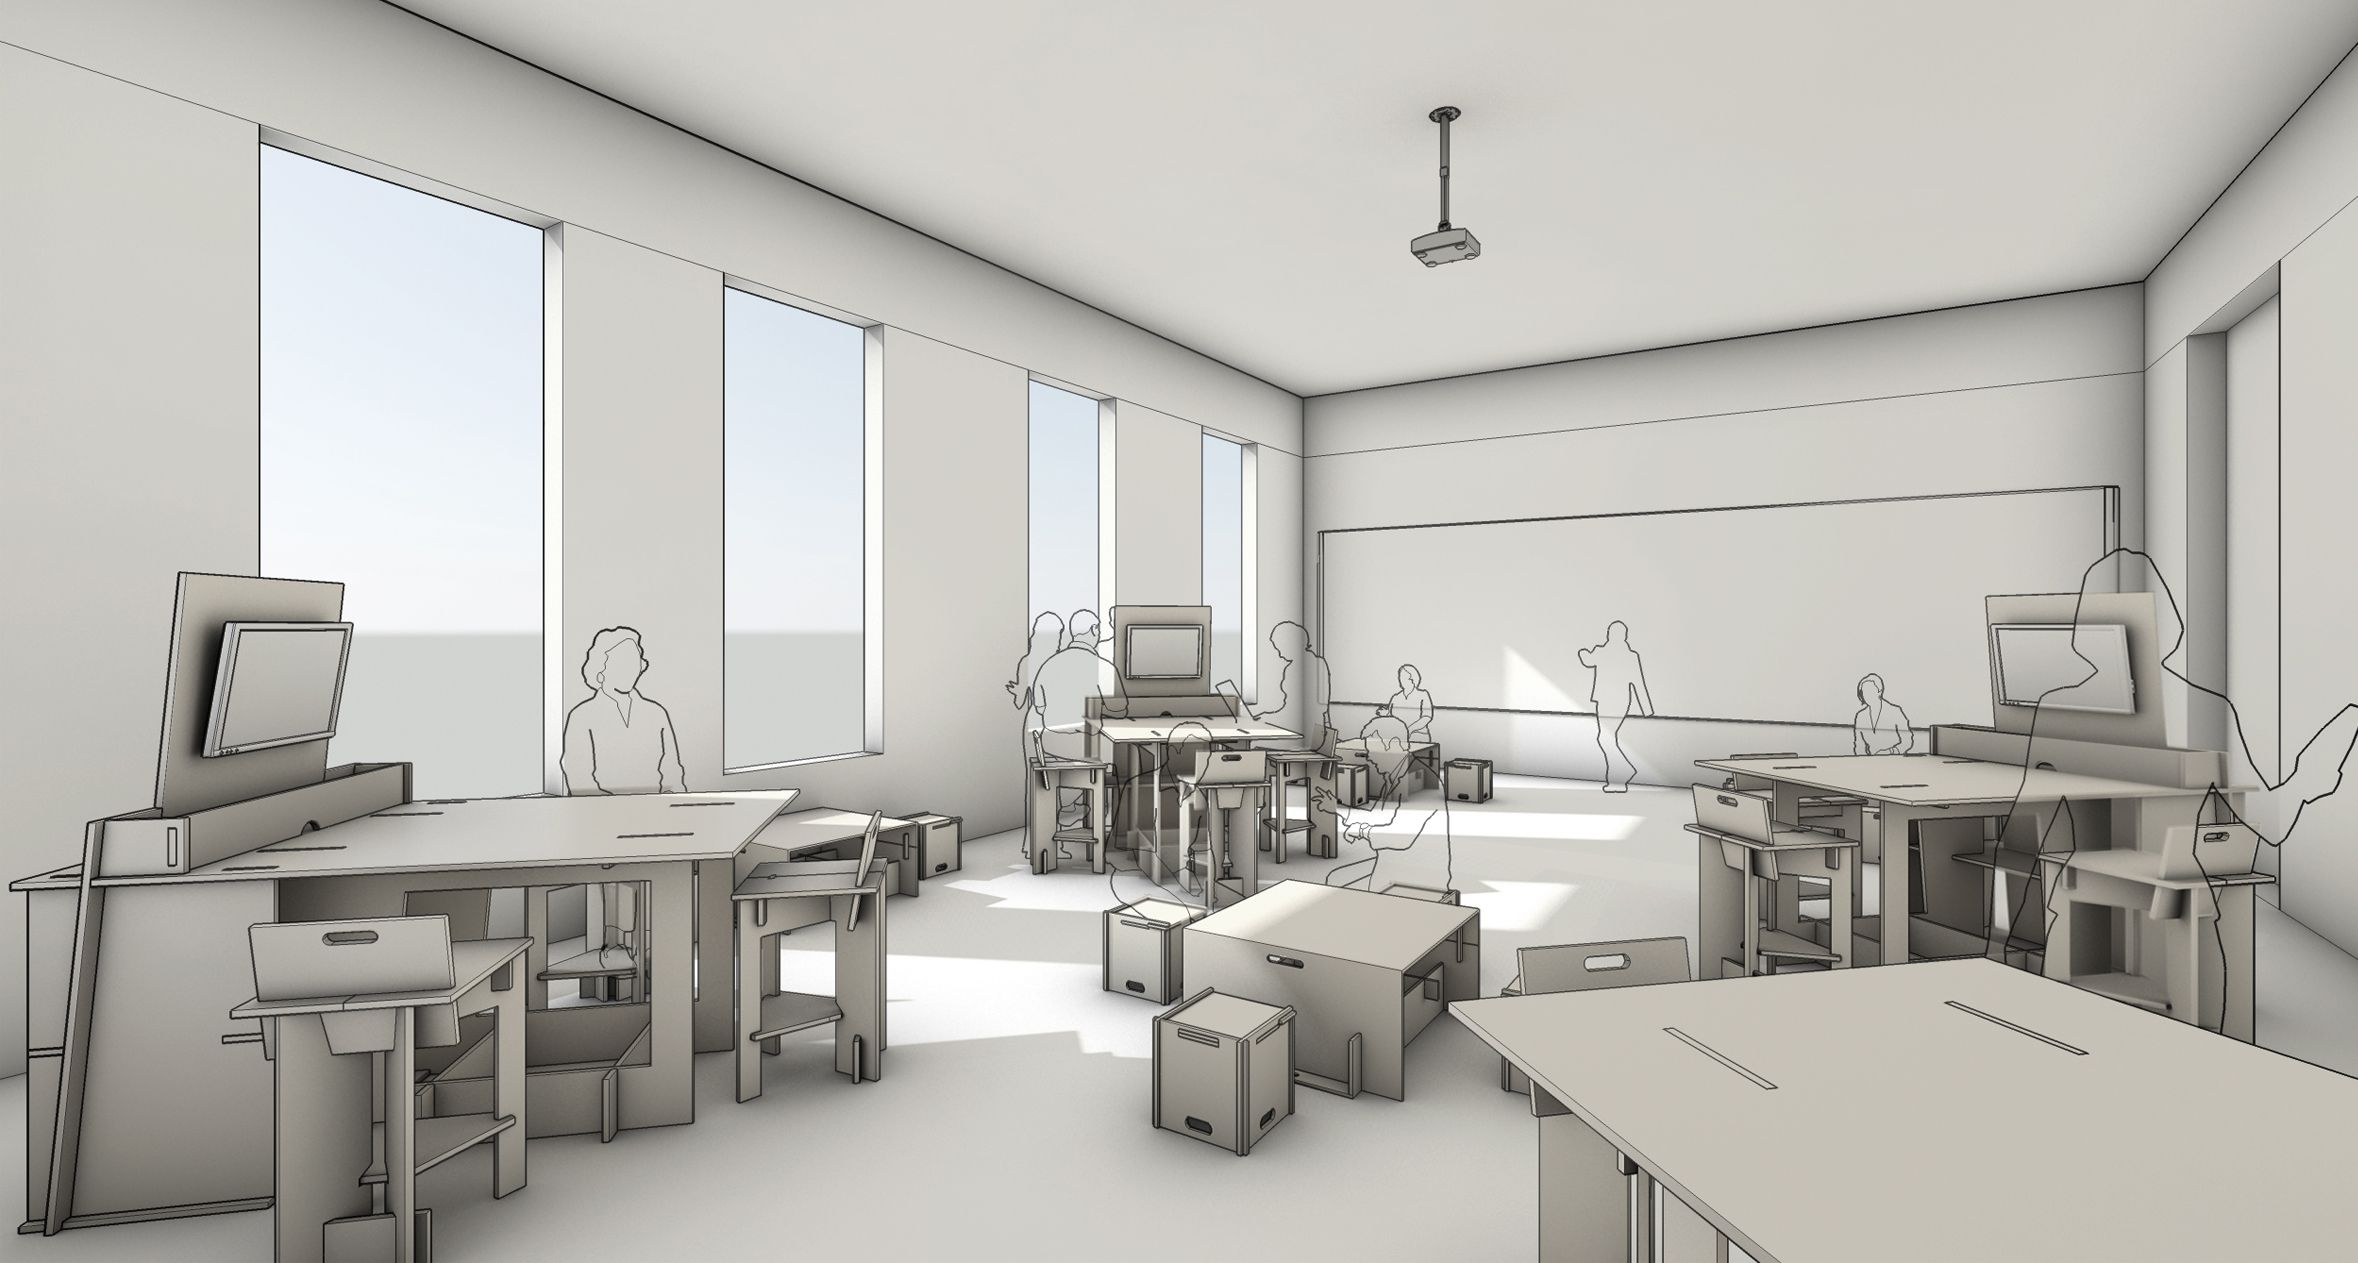 Classroom Design Architecture : Rewired rethink education st century classroom and